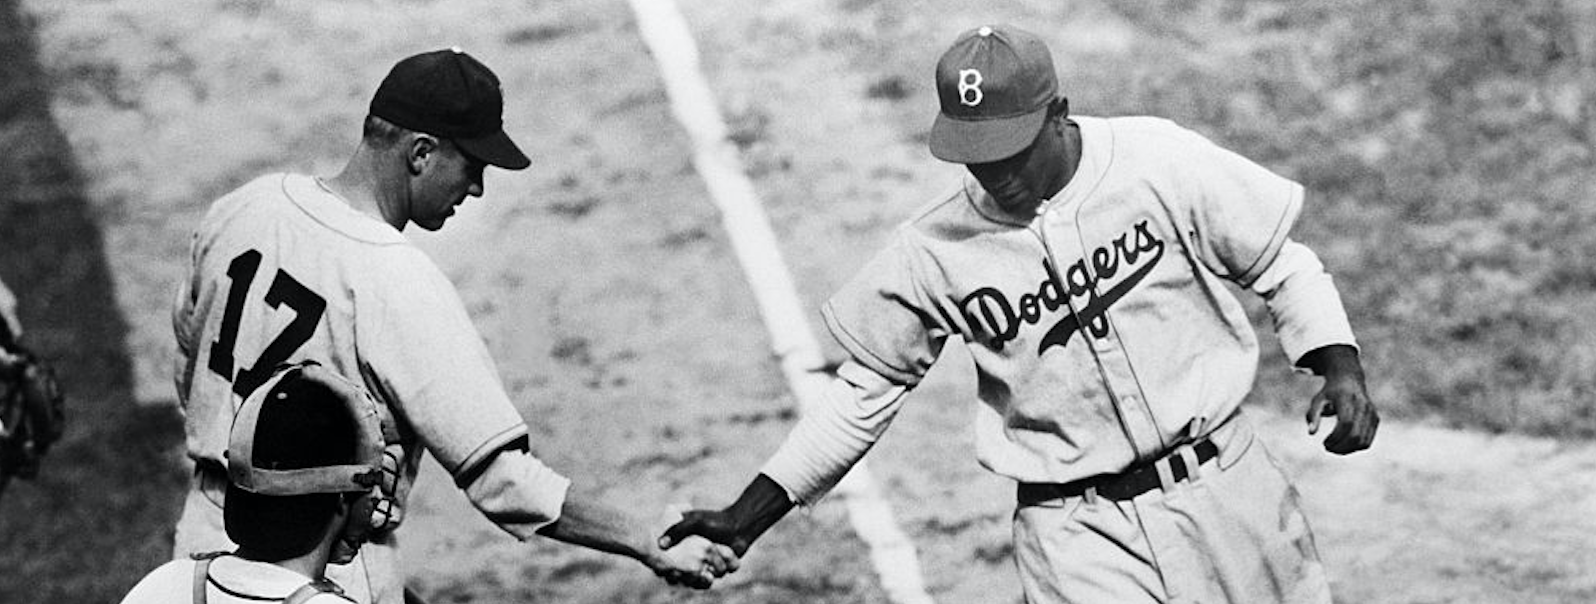 Jackie Robinson (right) of the Brooklyn Dodgers, breaking the color barrier this season as the first African-American to play in the Major Leagues, crosses home plate after hitting his first home run as a Dodger, off New York Giants' pitcher Dave Rosolo. Teammate Tommy Tatum, next up to bat, offers a congratulatory handshake as Giants catcher Walker Cooper looks on. The Giants opened their home season at the Polo Grounds with a victory over the Dodgers.